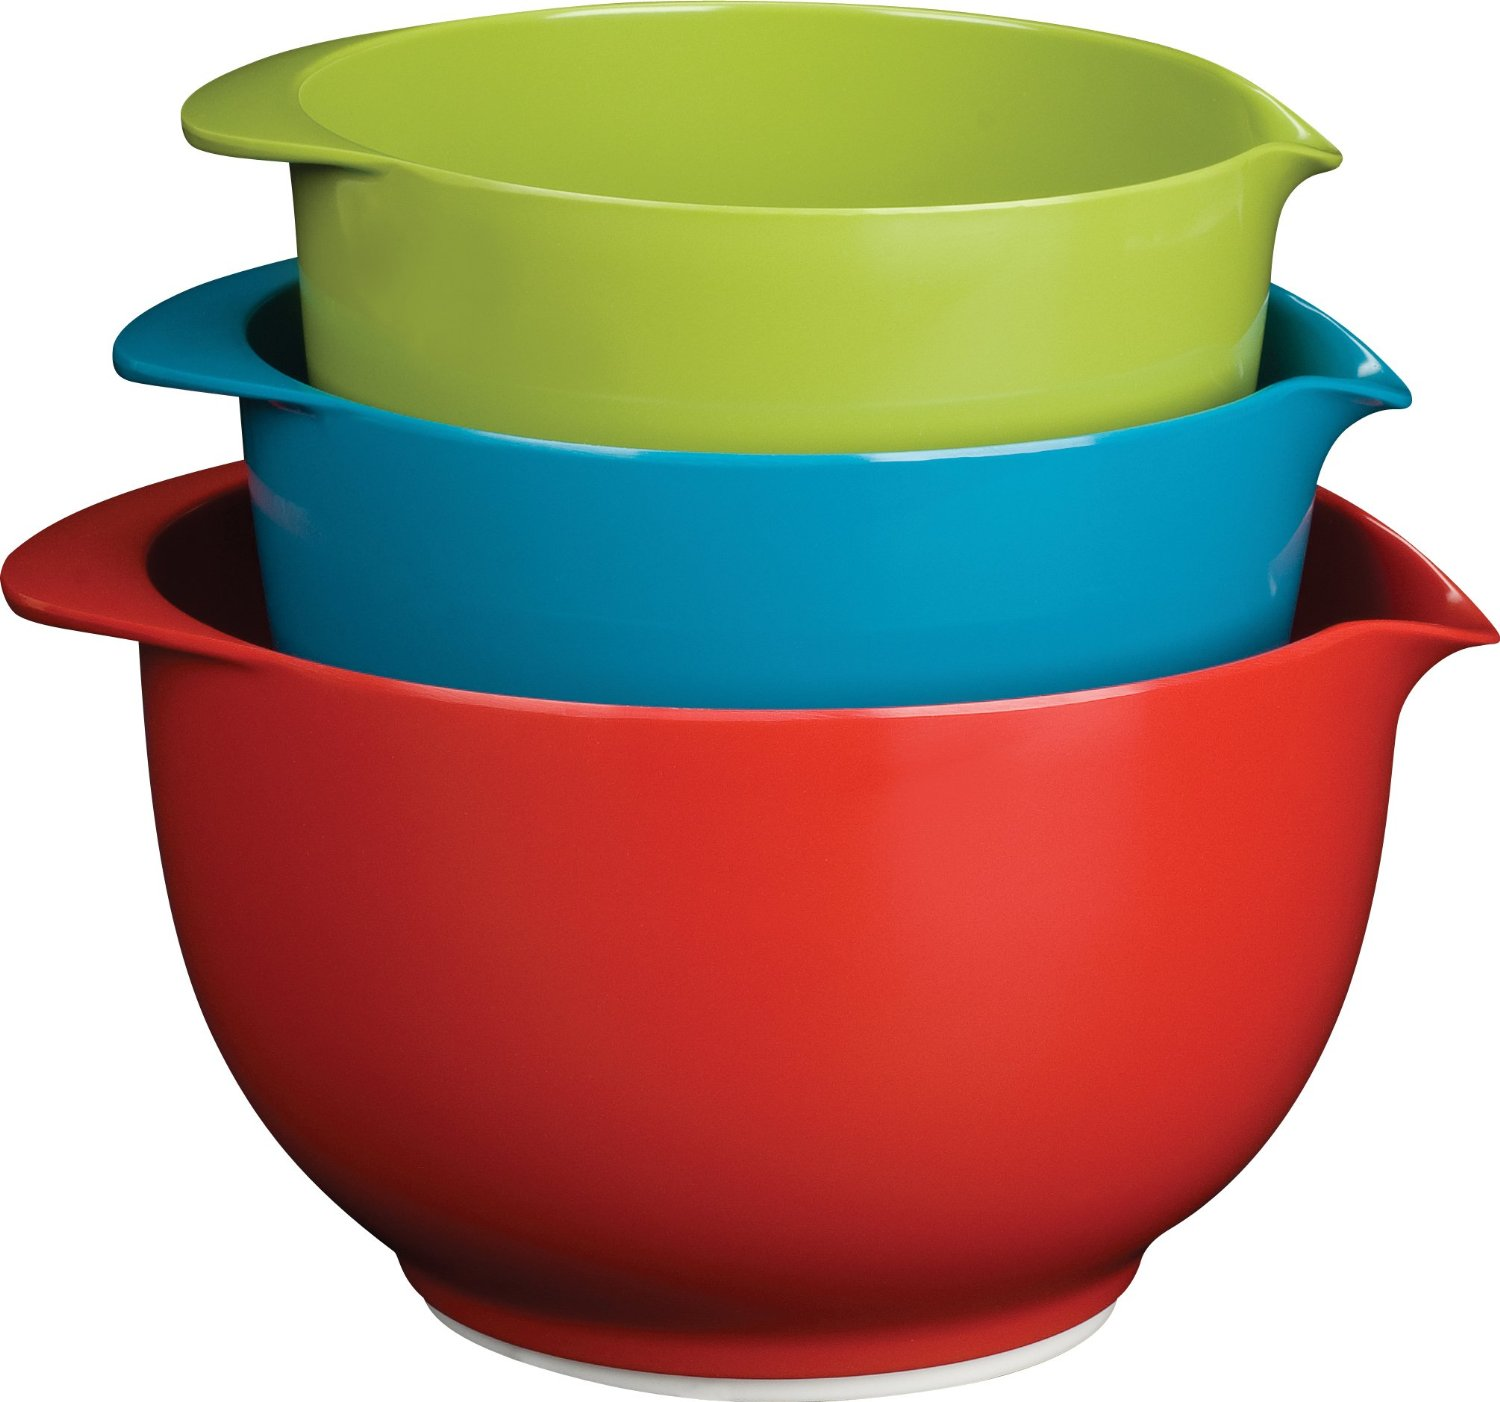 Measuring Cups Clipart | Free download on ClipArtMag